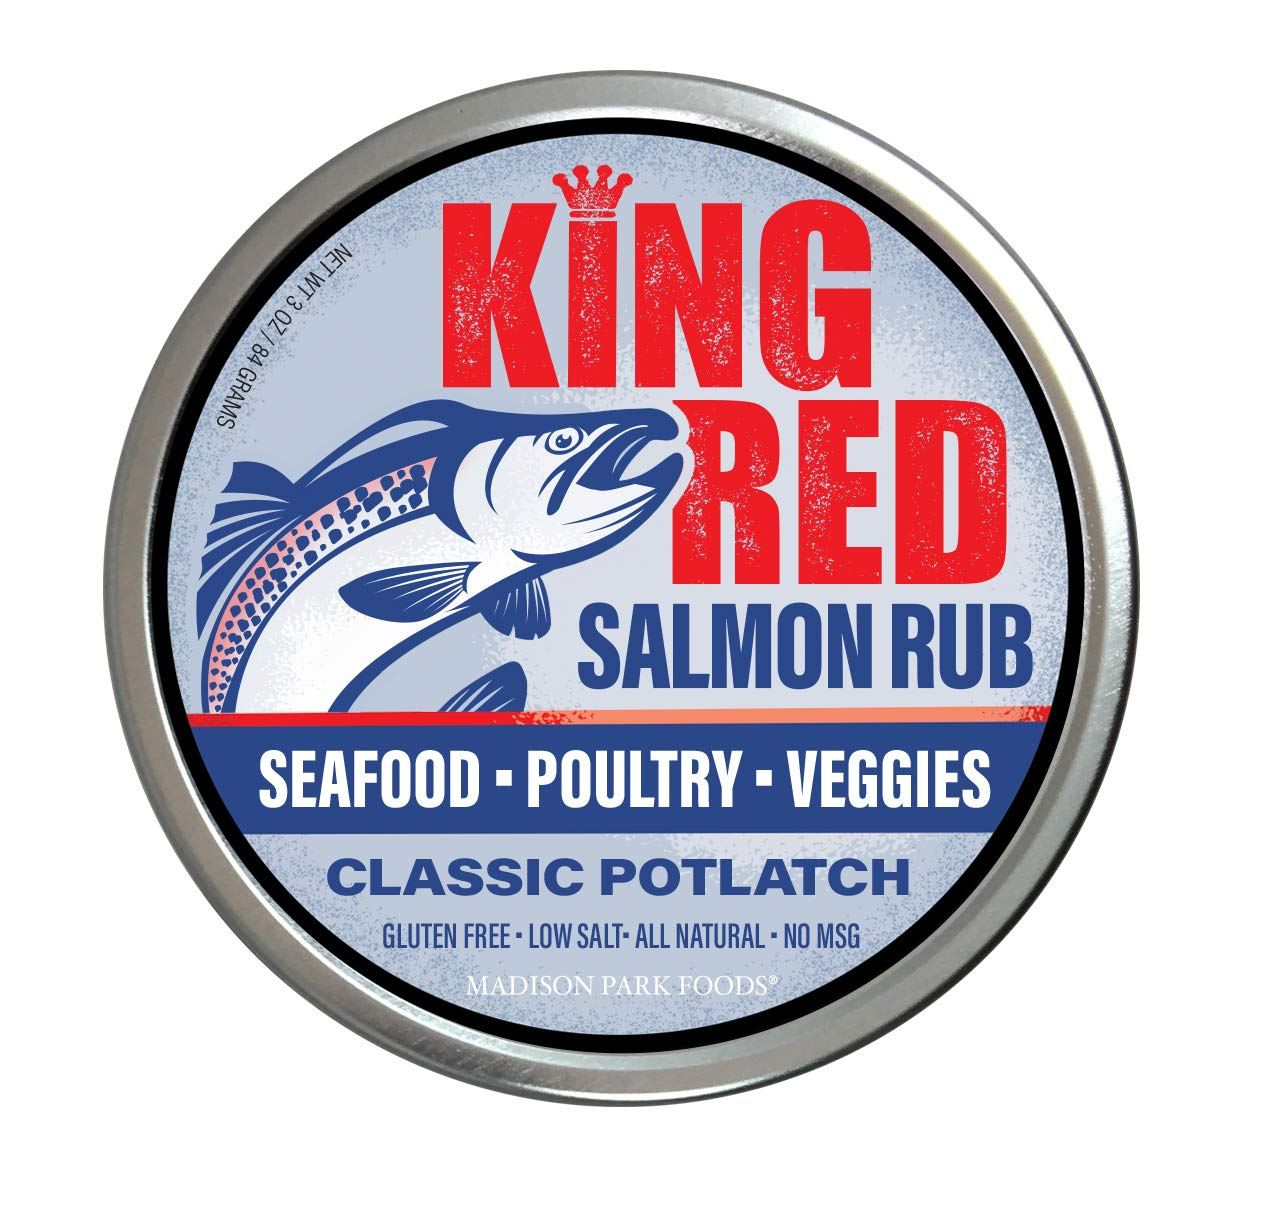 King Red Classic Salmon Rub and Potlatch Seasoning Spices for All Seafood, Veggies and Chicken - Gluten Free, All Natural, Low Salt, No MSG (3 oz Gourmet Tin)